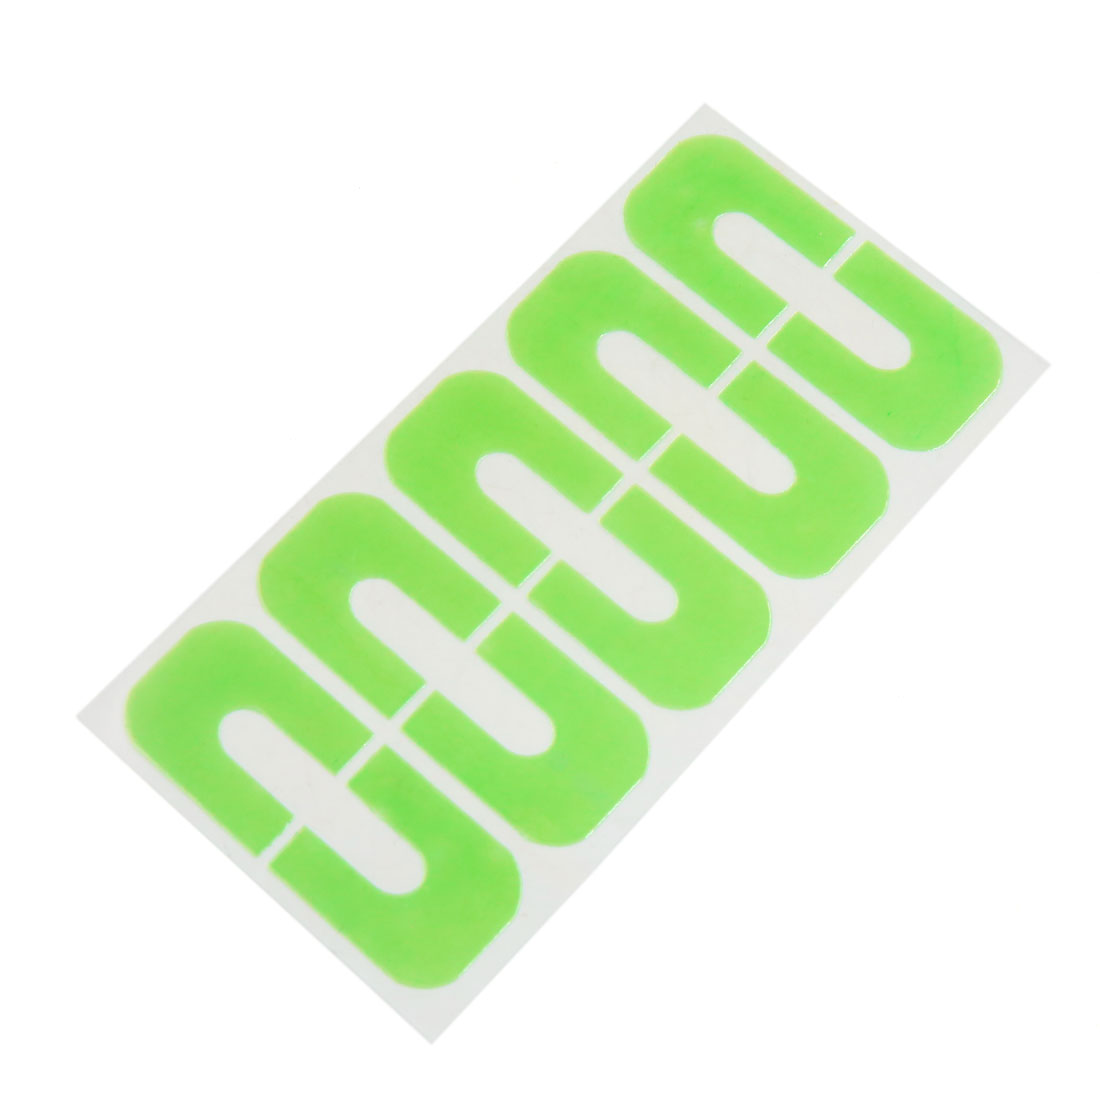 10pcs Green Nail Polish Protector Spill-Resistant Stencil Stickers Manicure Tape